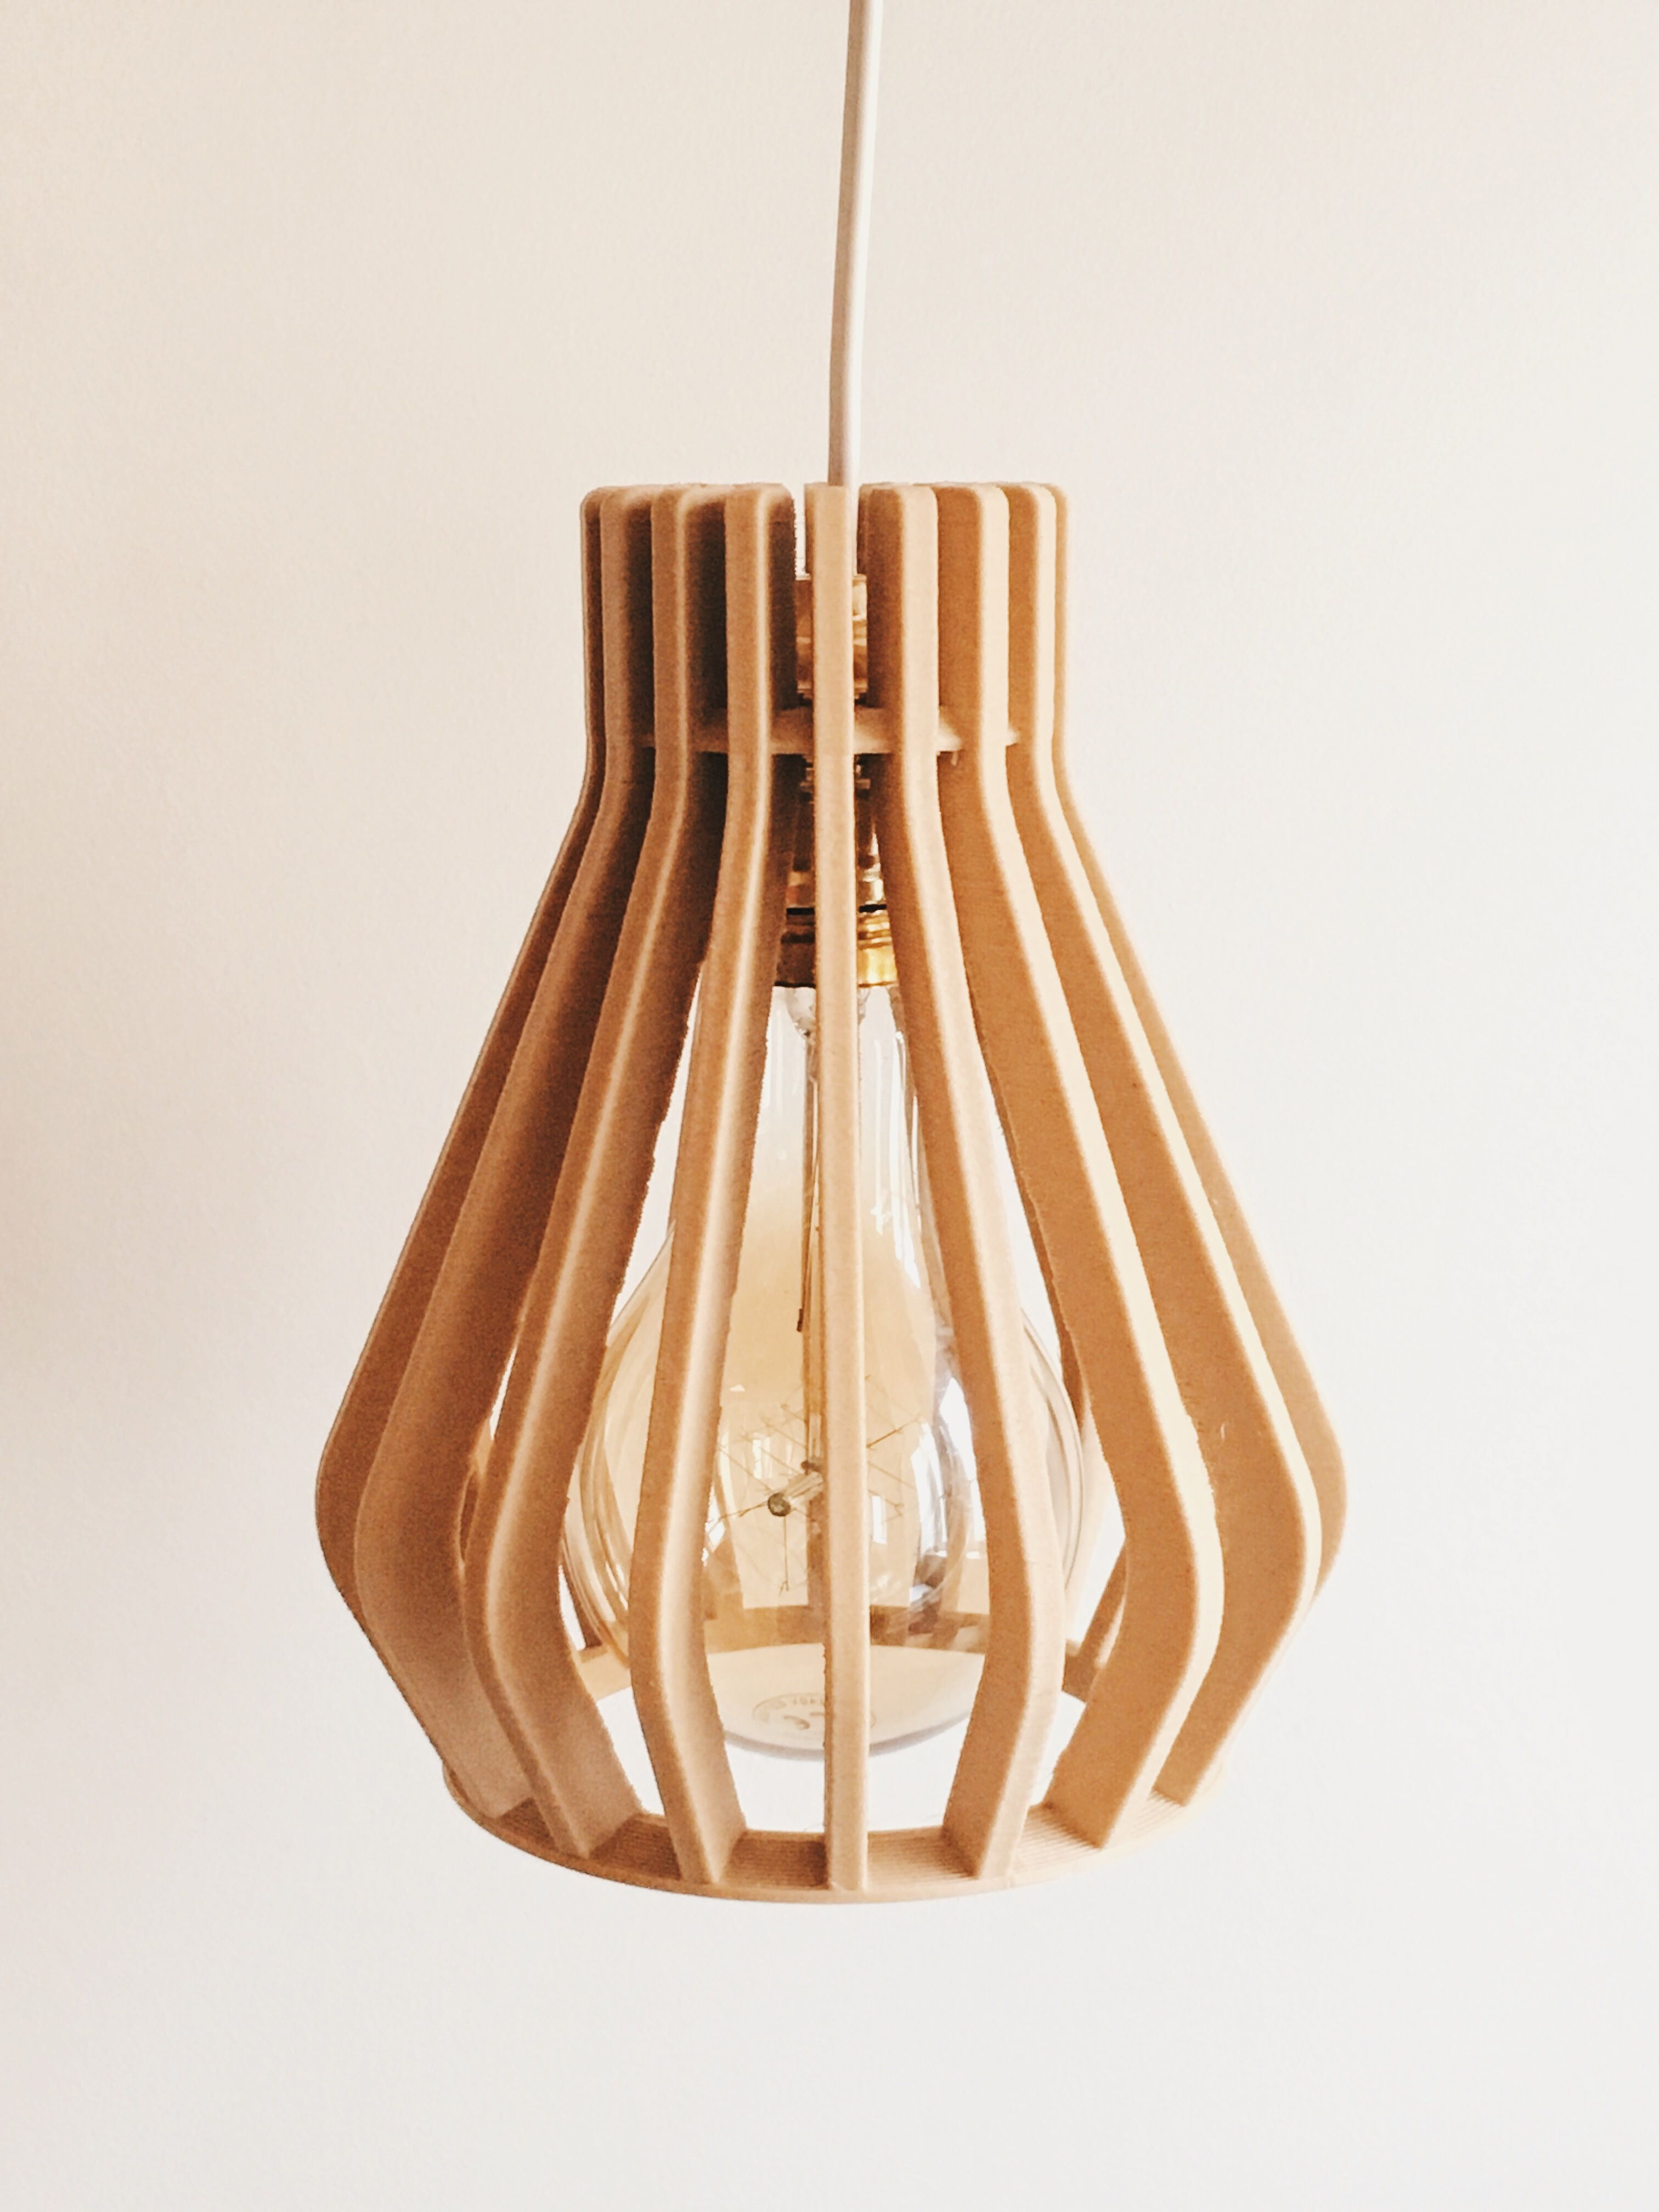 Explore Pendant Lamps, Pendant Lights And More